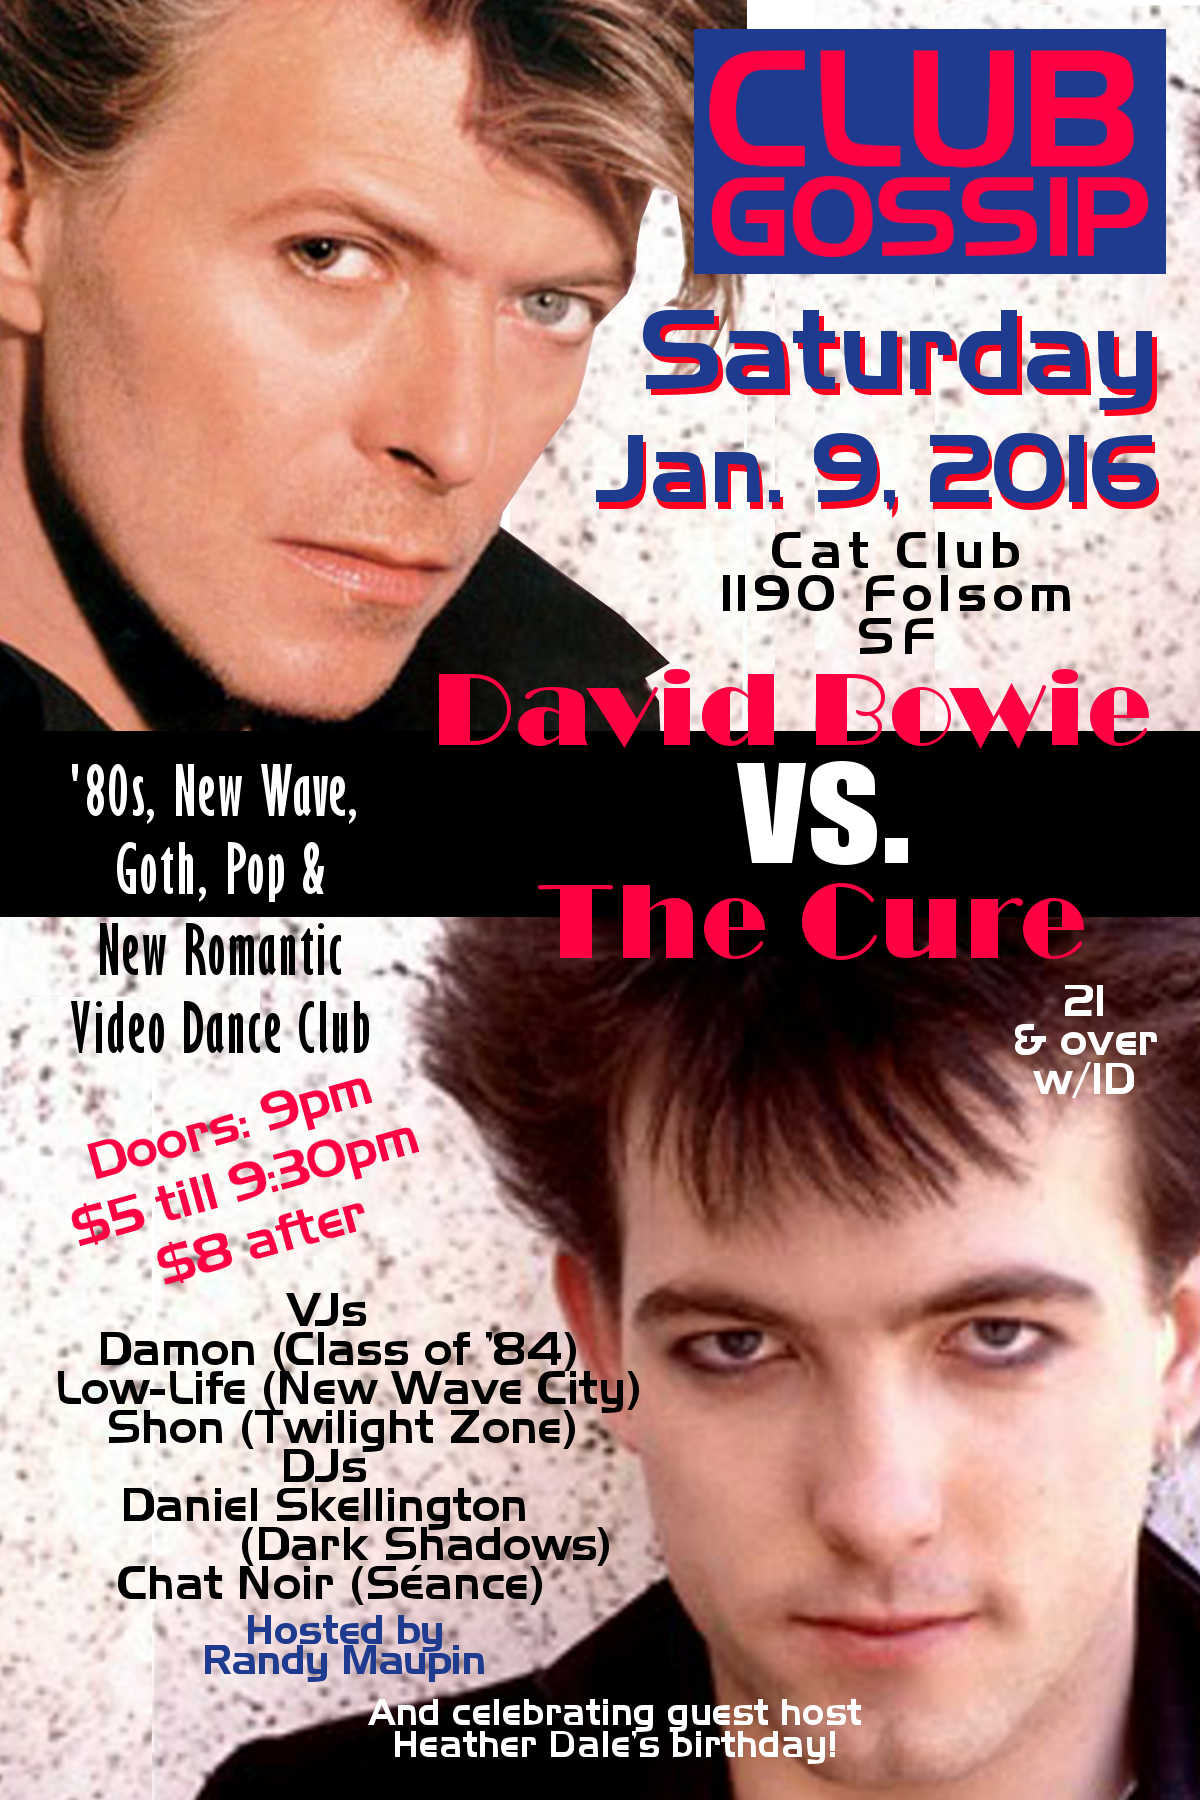 The Cure vs David Bowie